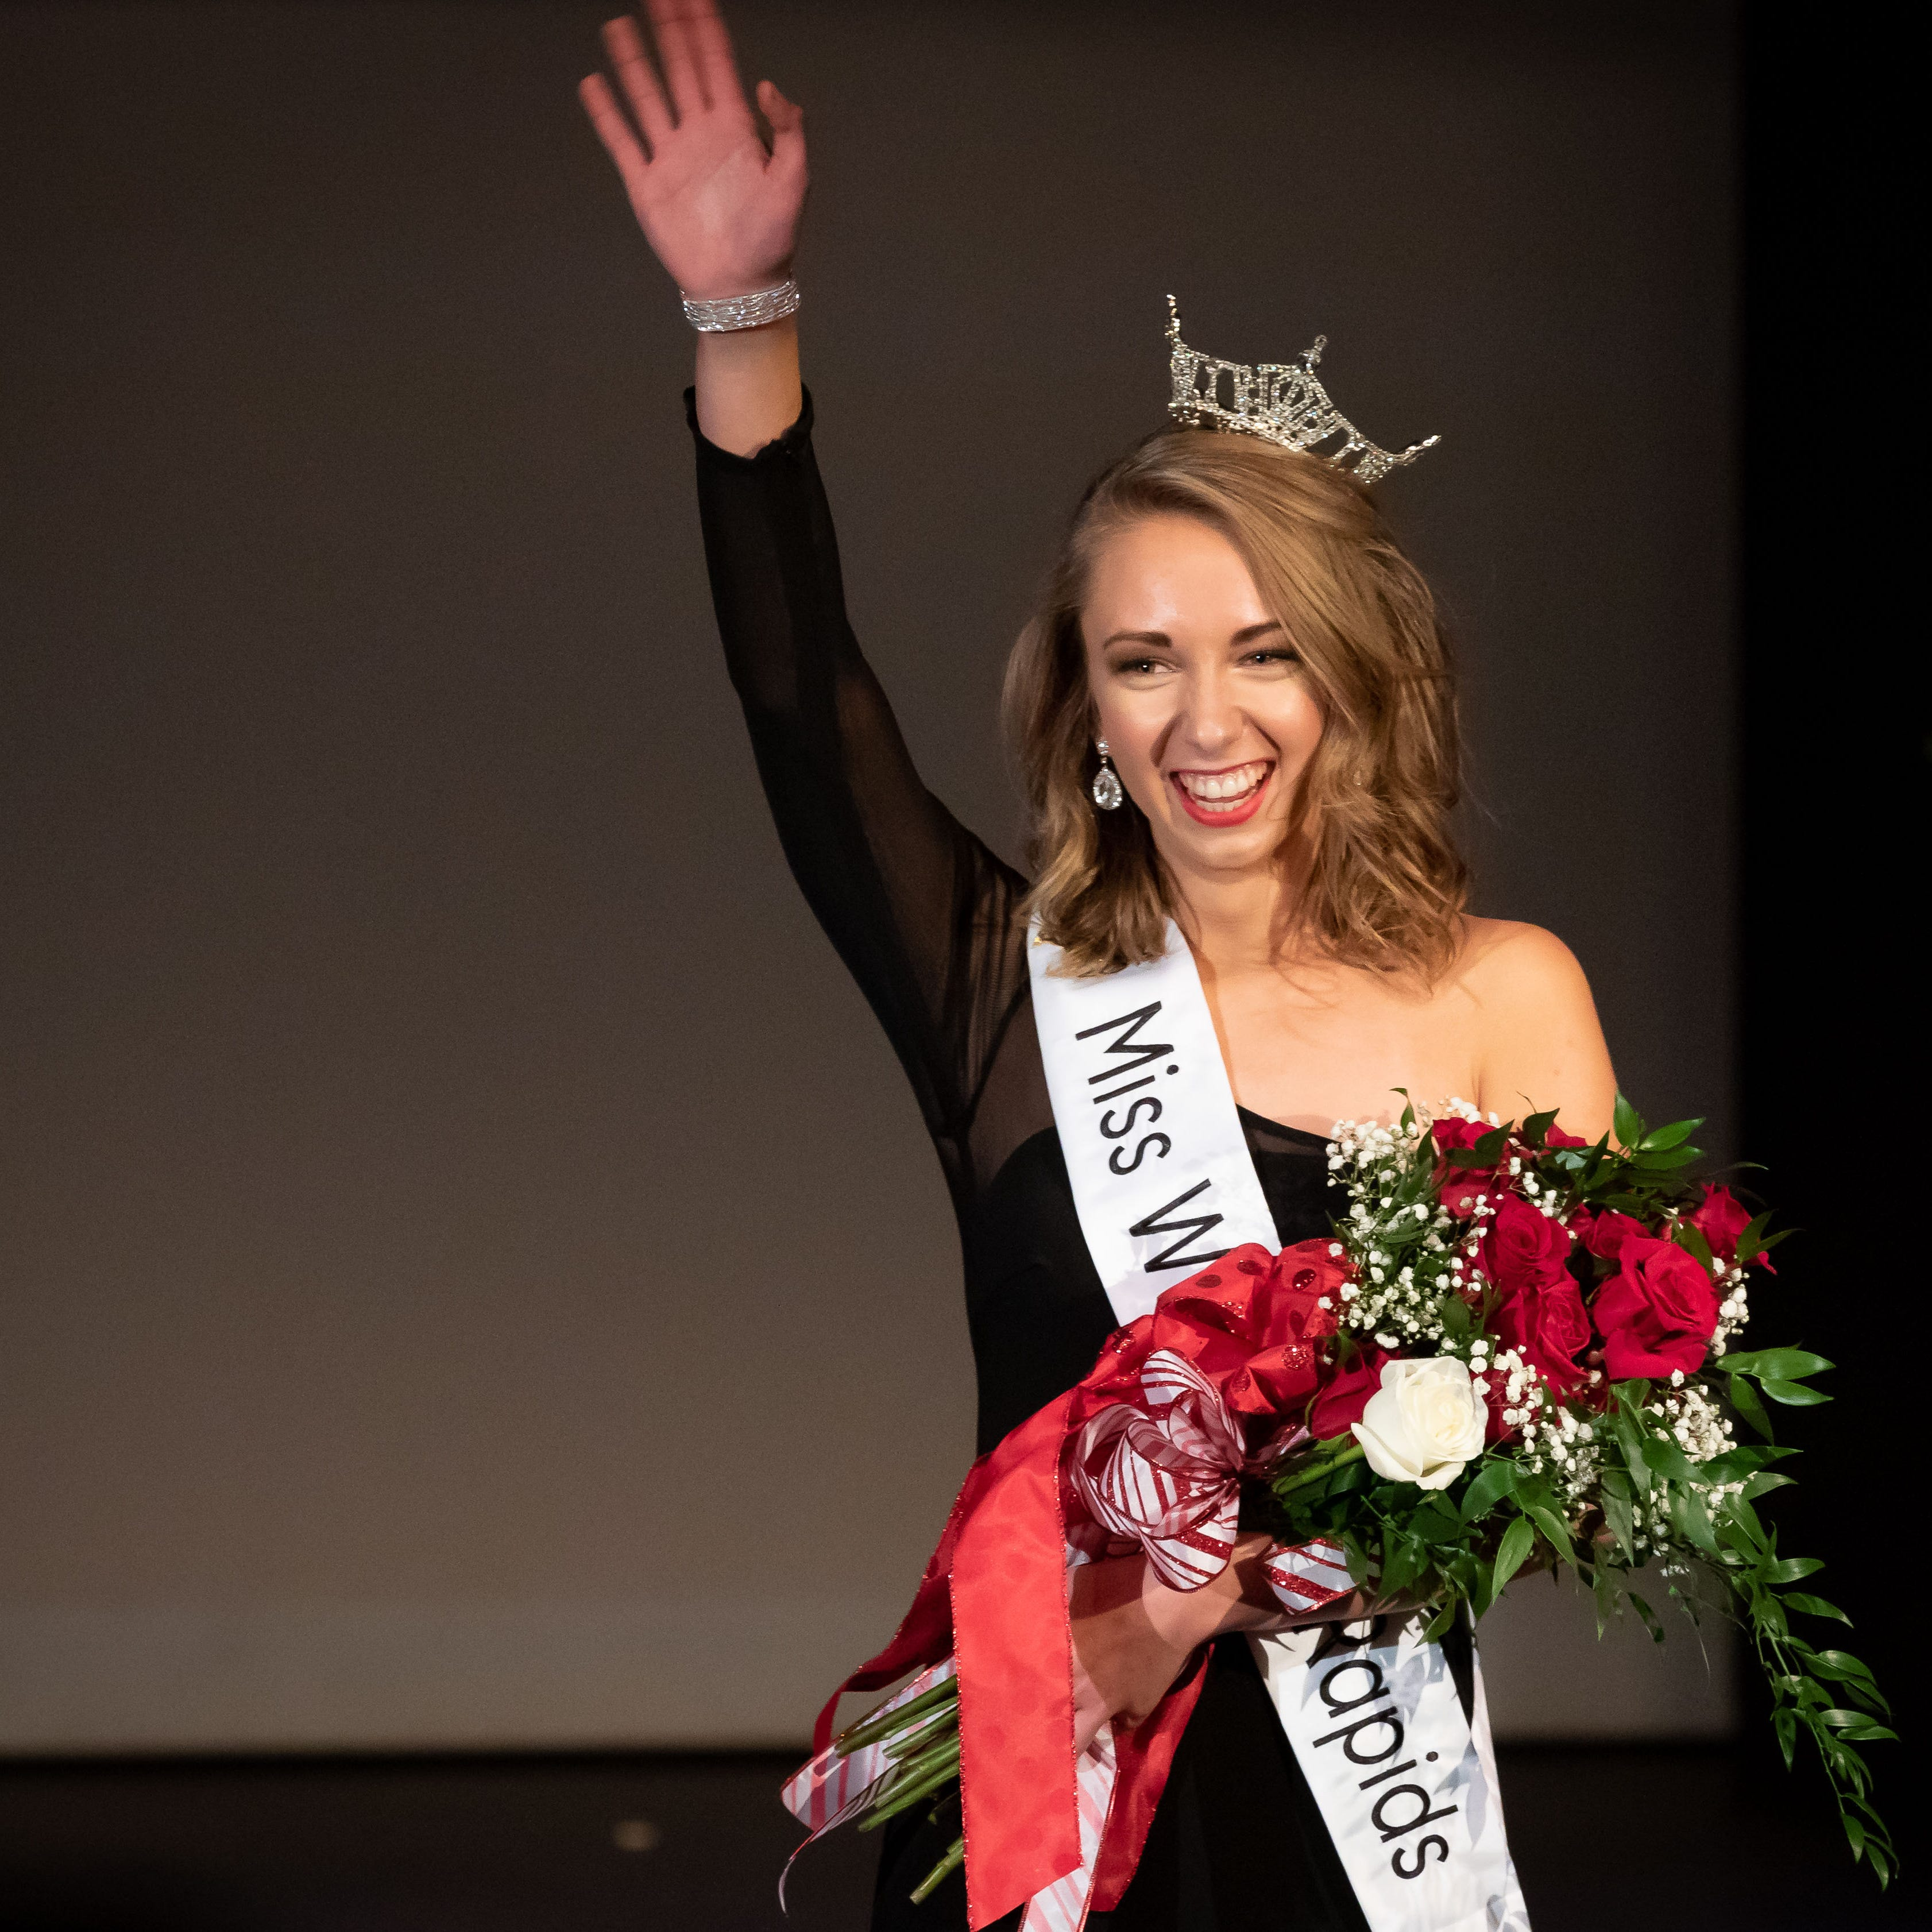 Danielle Moon aims to build 'Community Connections' as new Miss Wisconsin Rapids Area